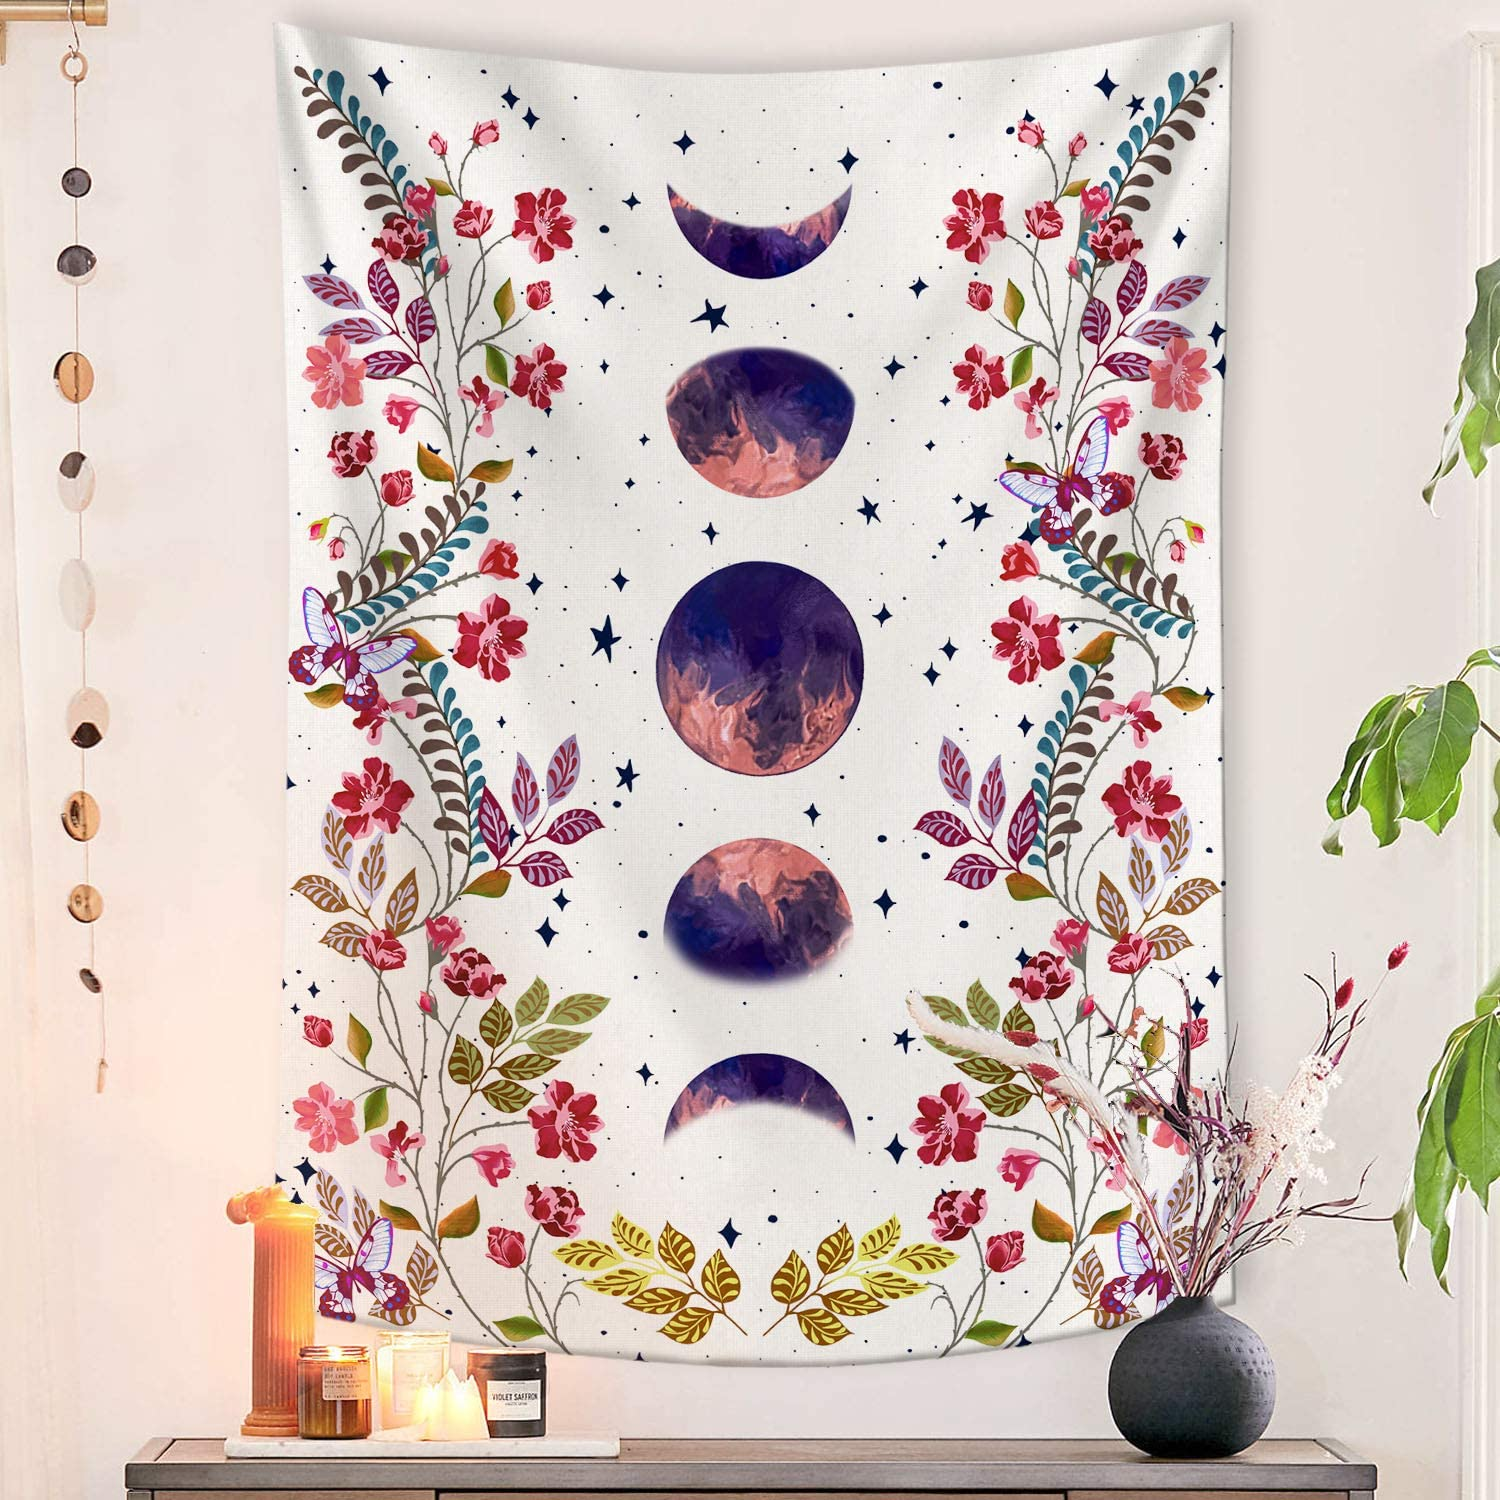 Lifeel Moonlit Garden Tapestry, Moon Phase Surrounded by Vines and Flowers White Wall Decor Tapestry 36×48 inches